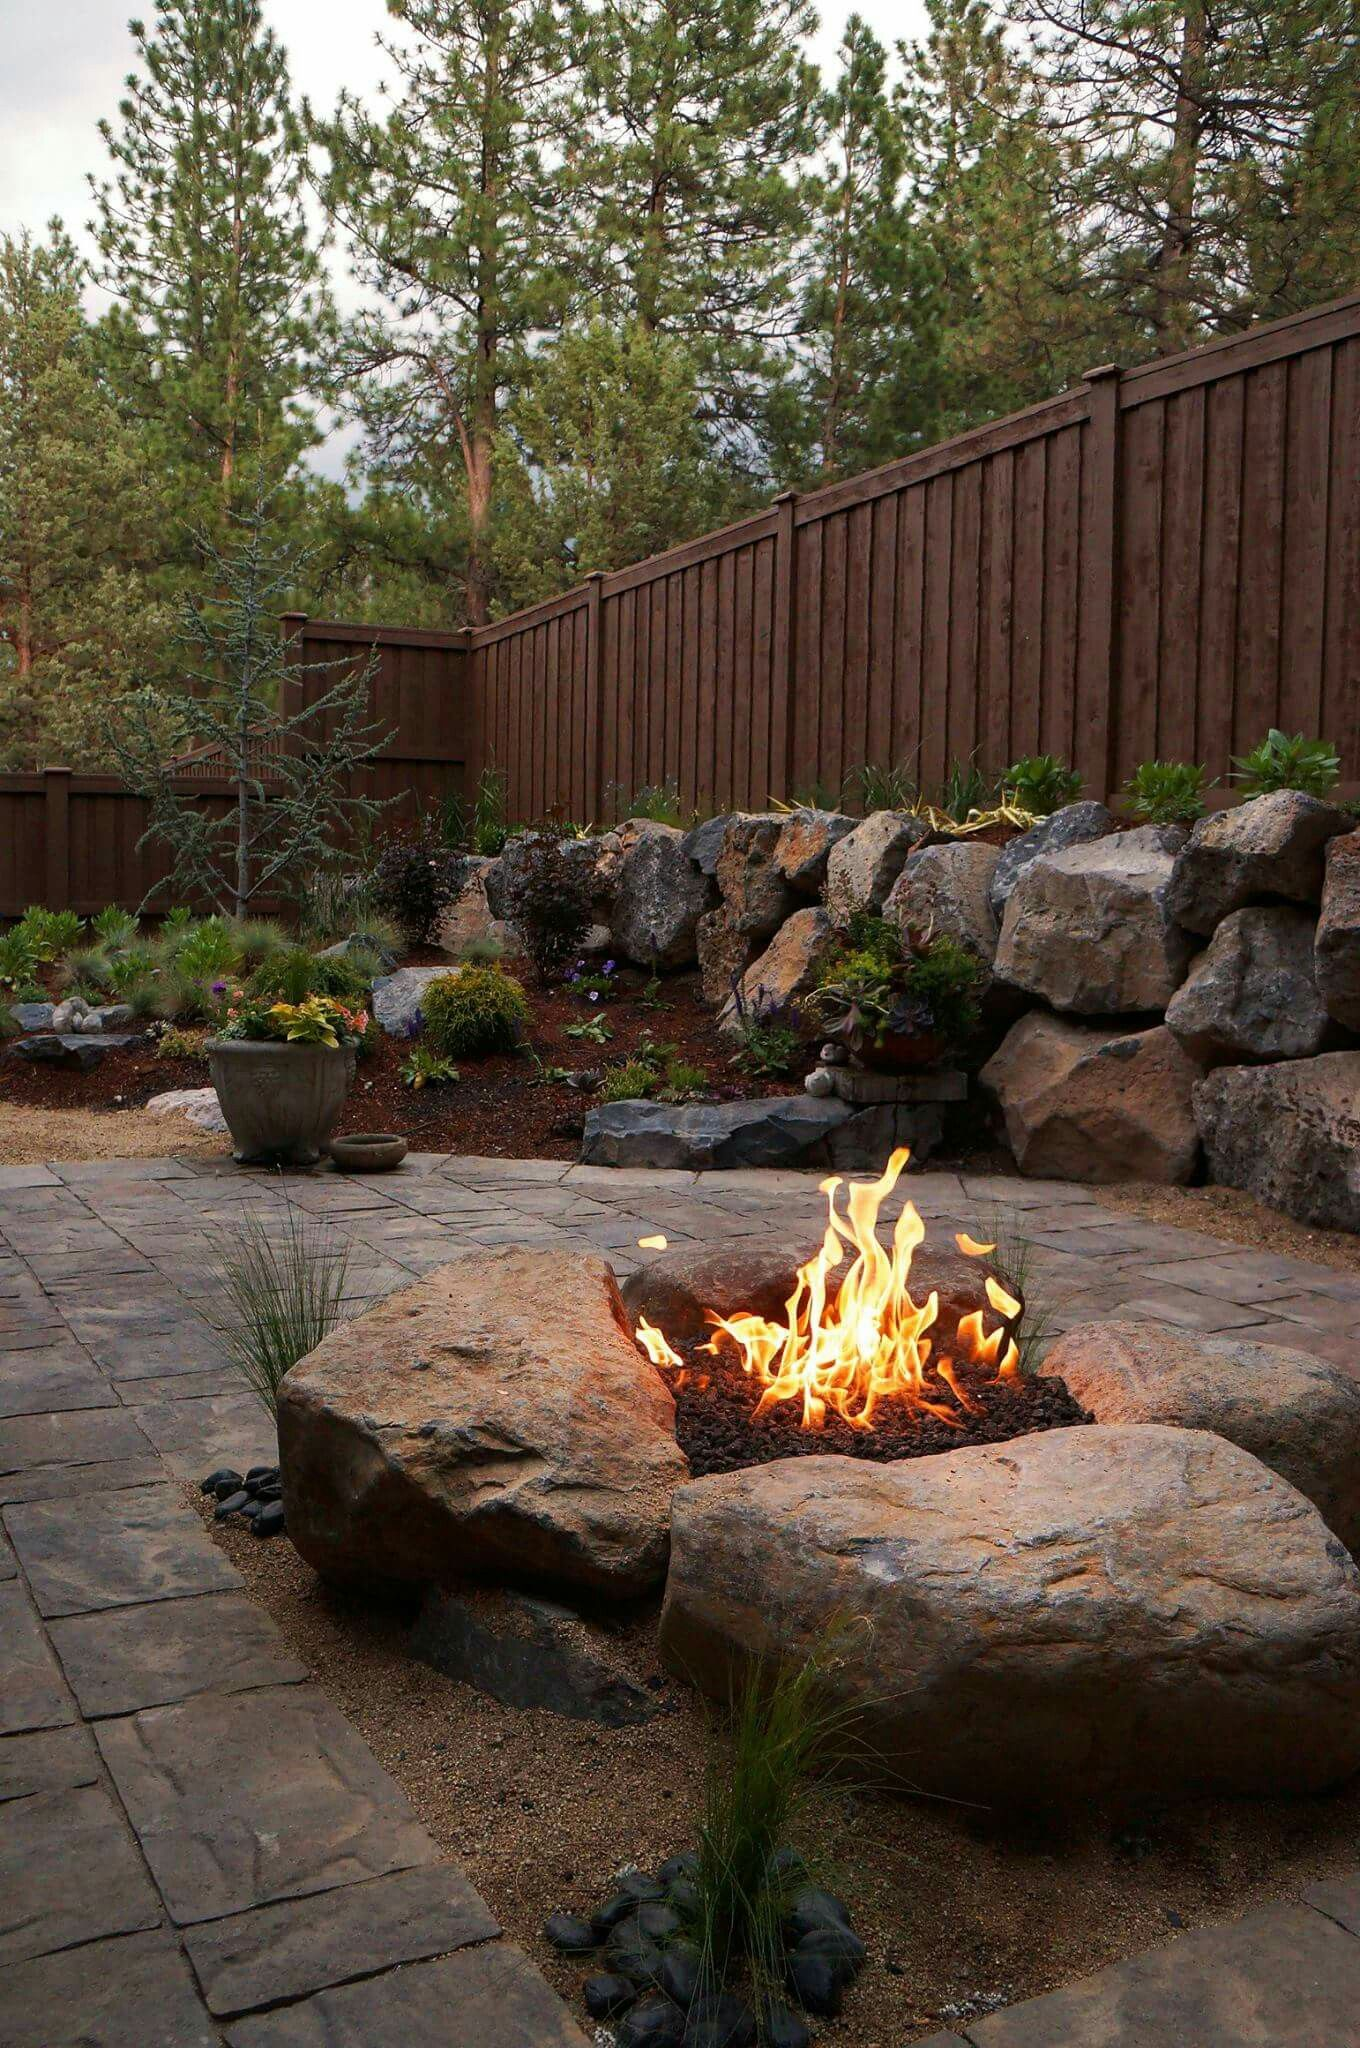 Boulder Fire Pit By Newport Landscaping In Bend, Or